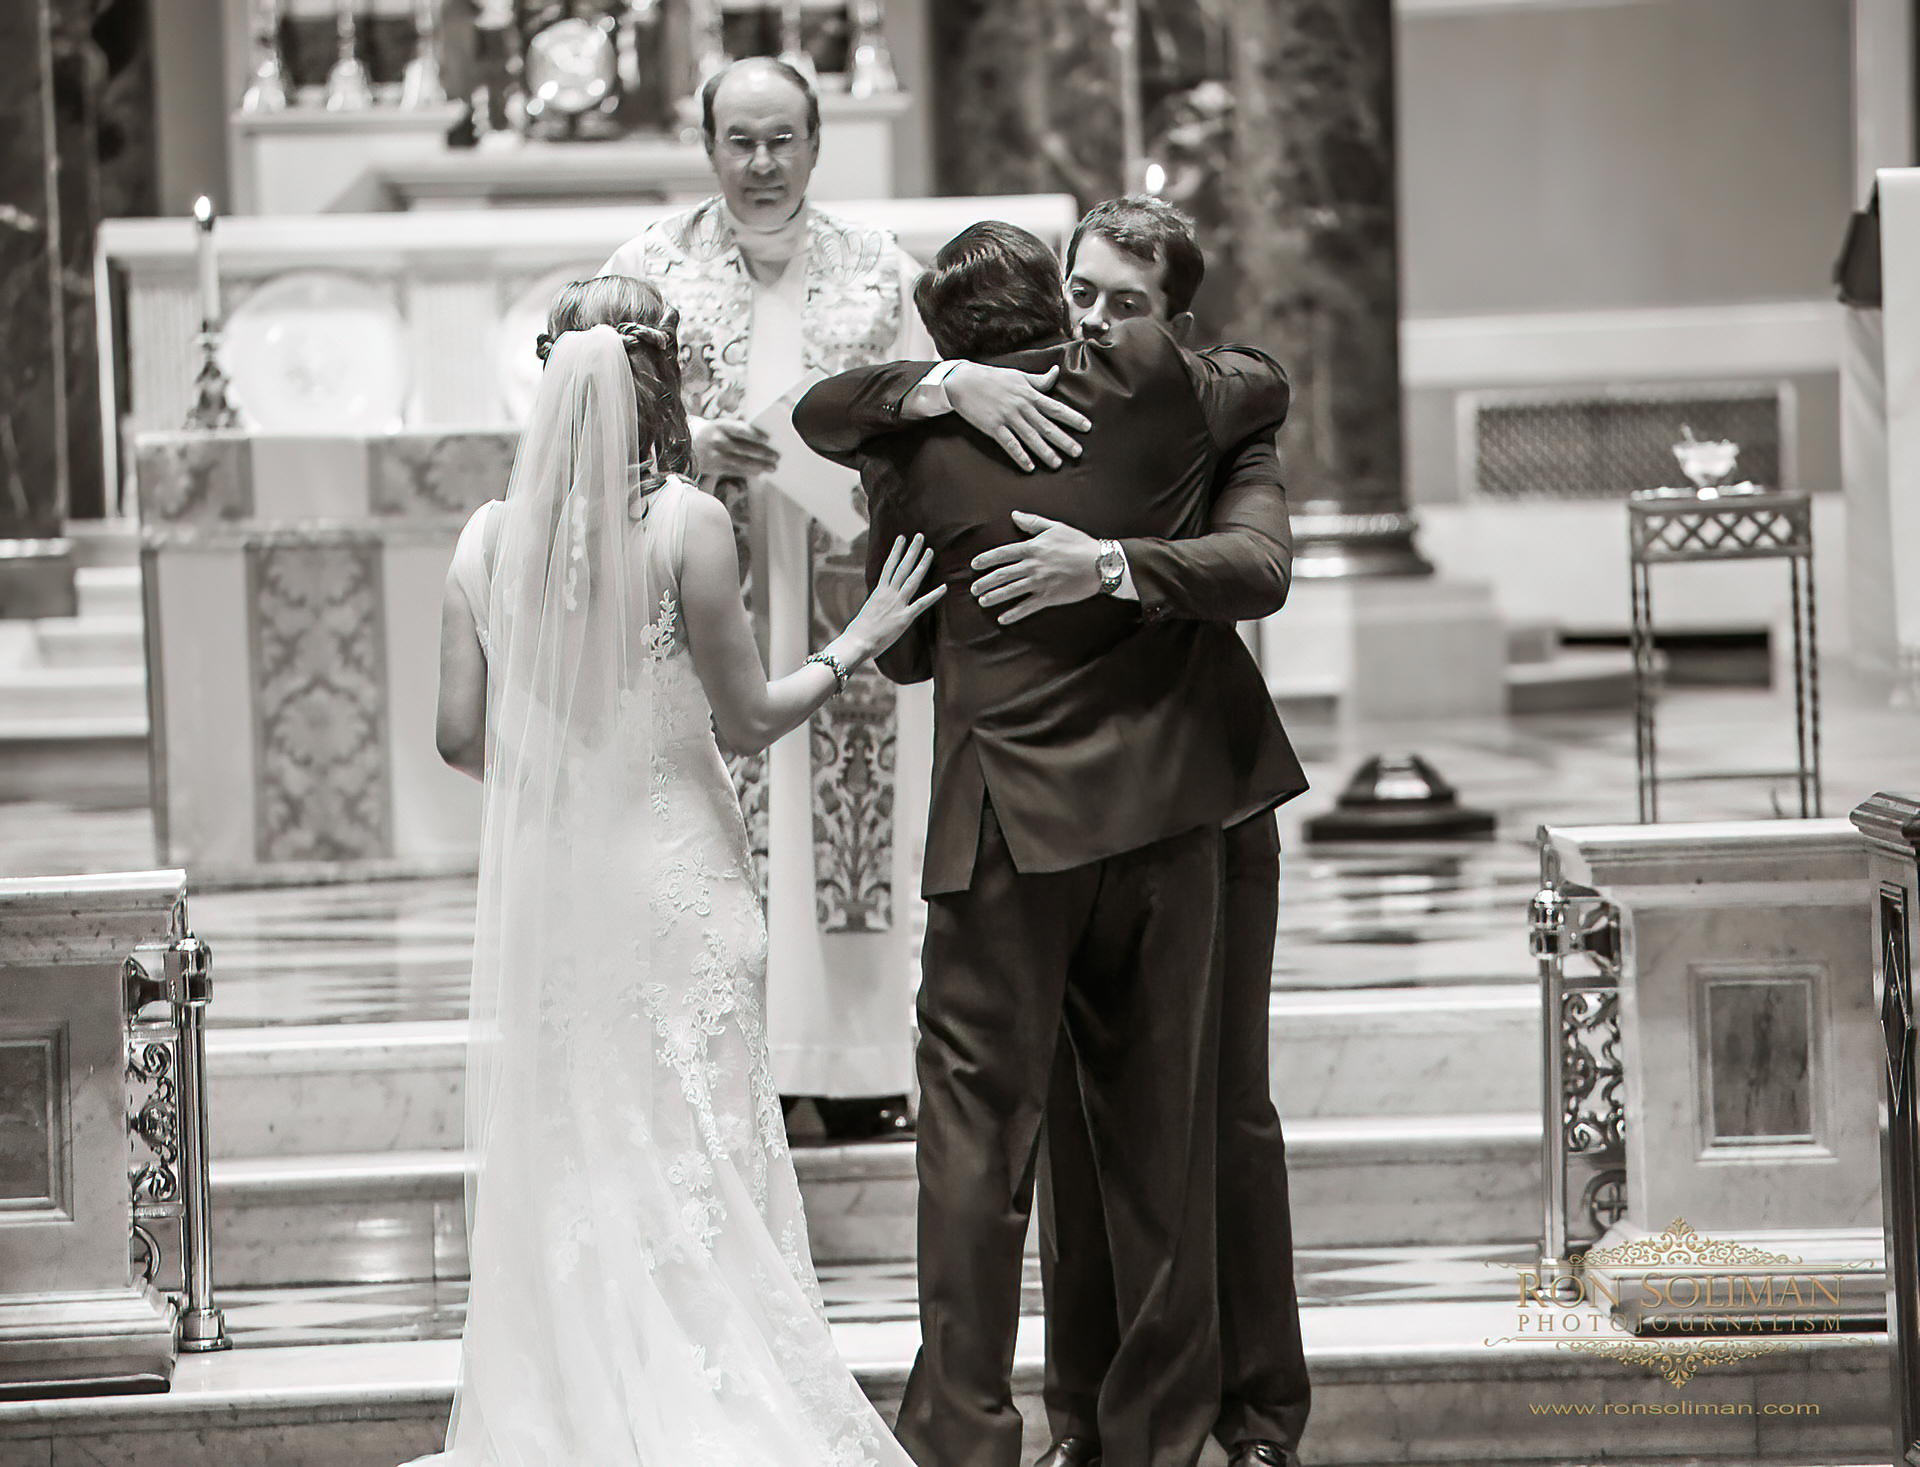 The Cathedral Basilica of Saints Peter and Paul wedding